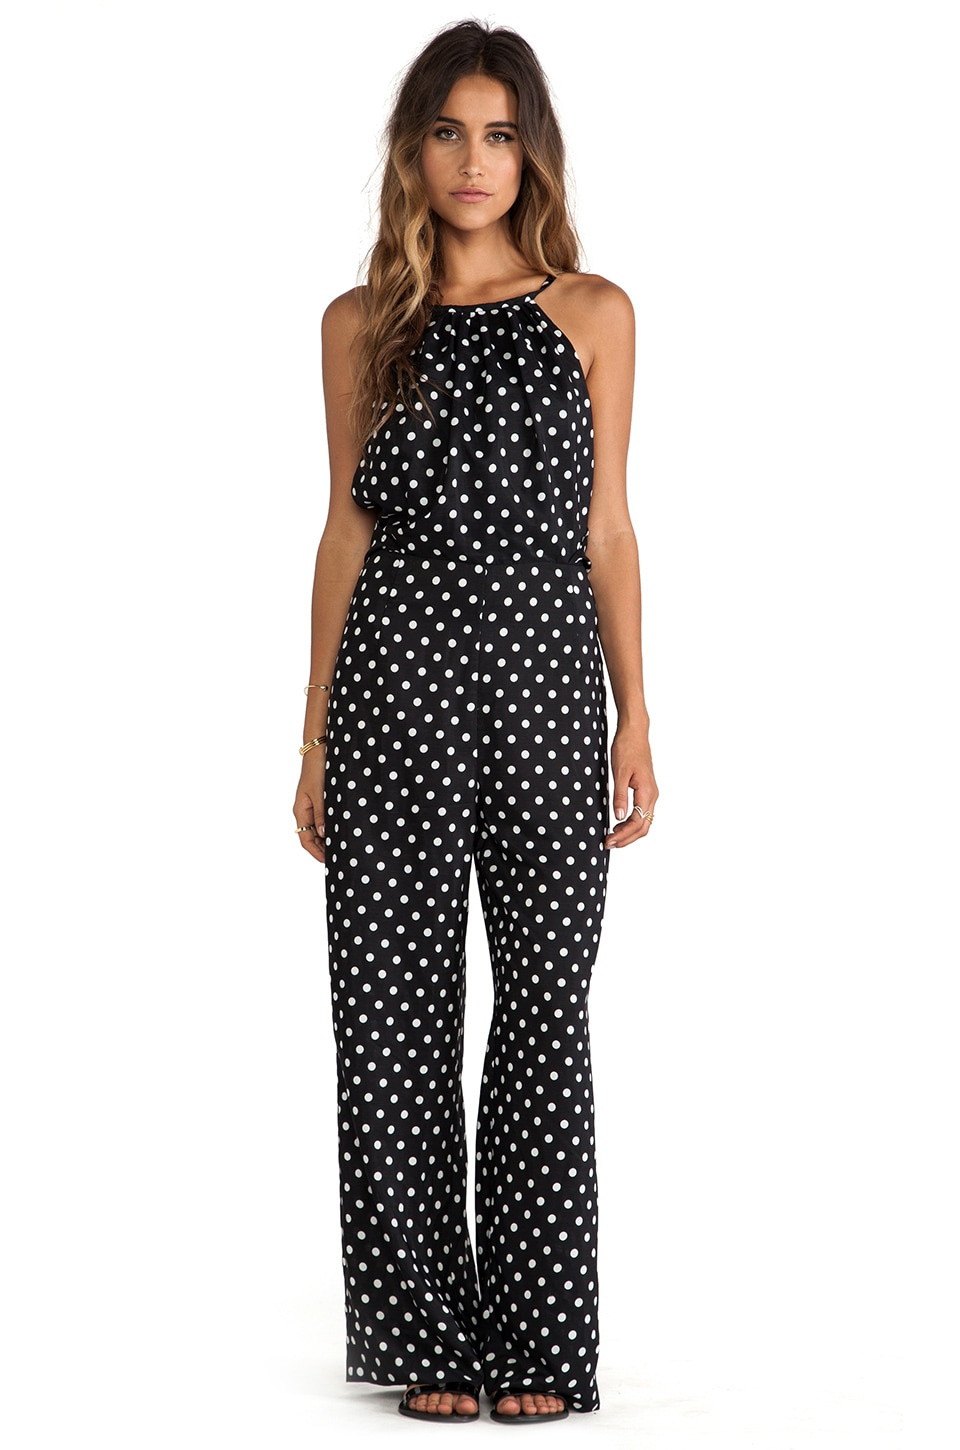 JARLO Queenie Jumpsuit in Polka Dot